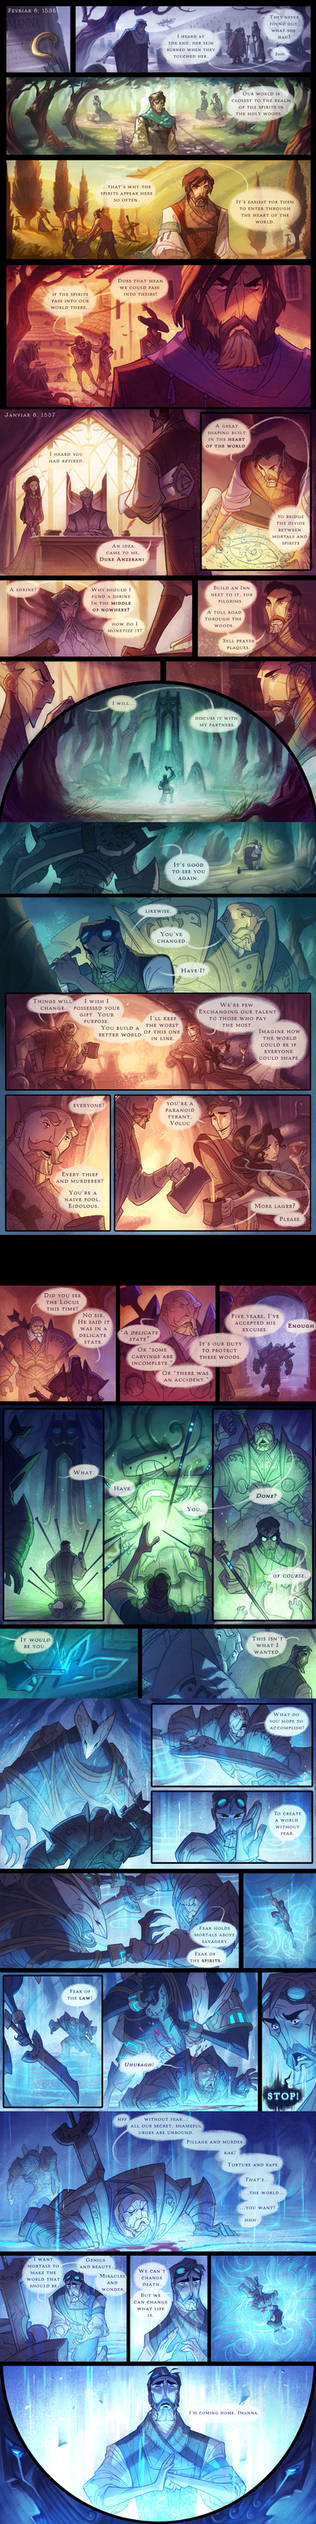 The Dawngate Chronicles - Prologue Part 2